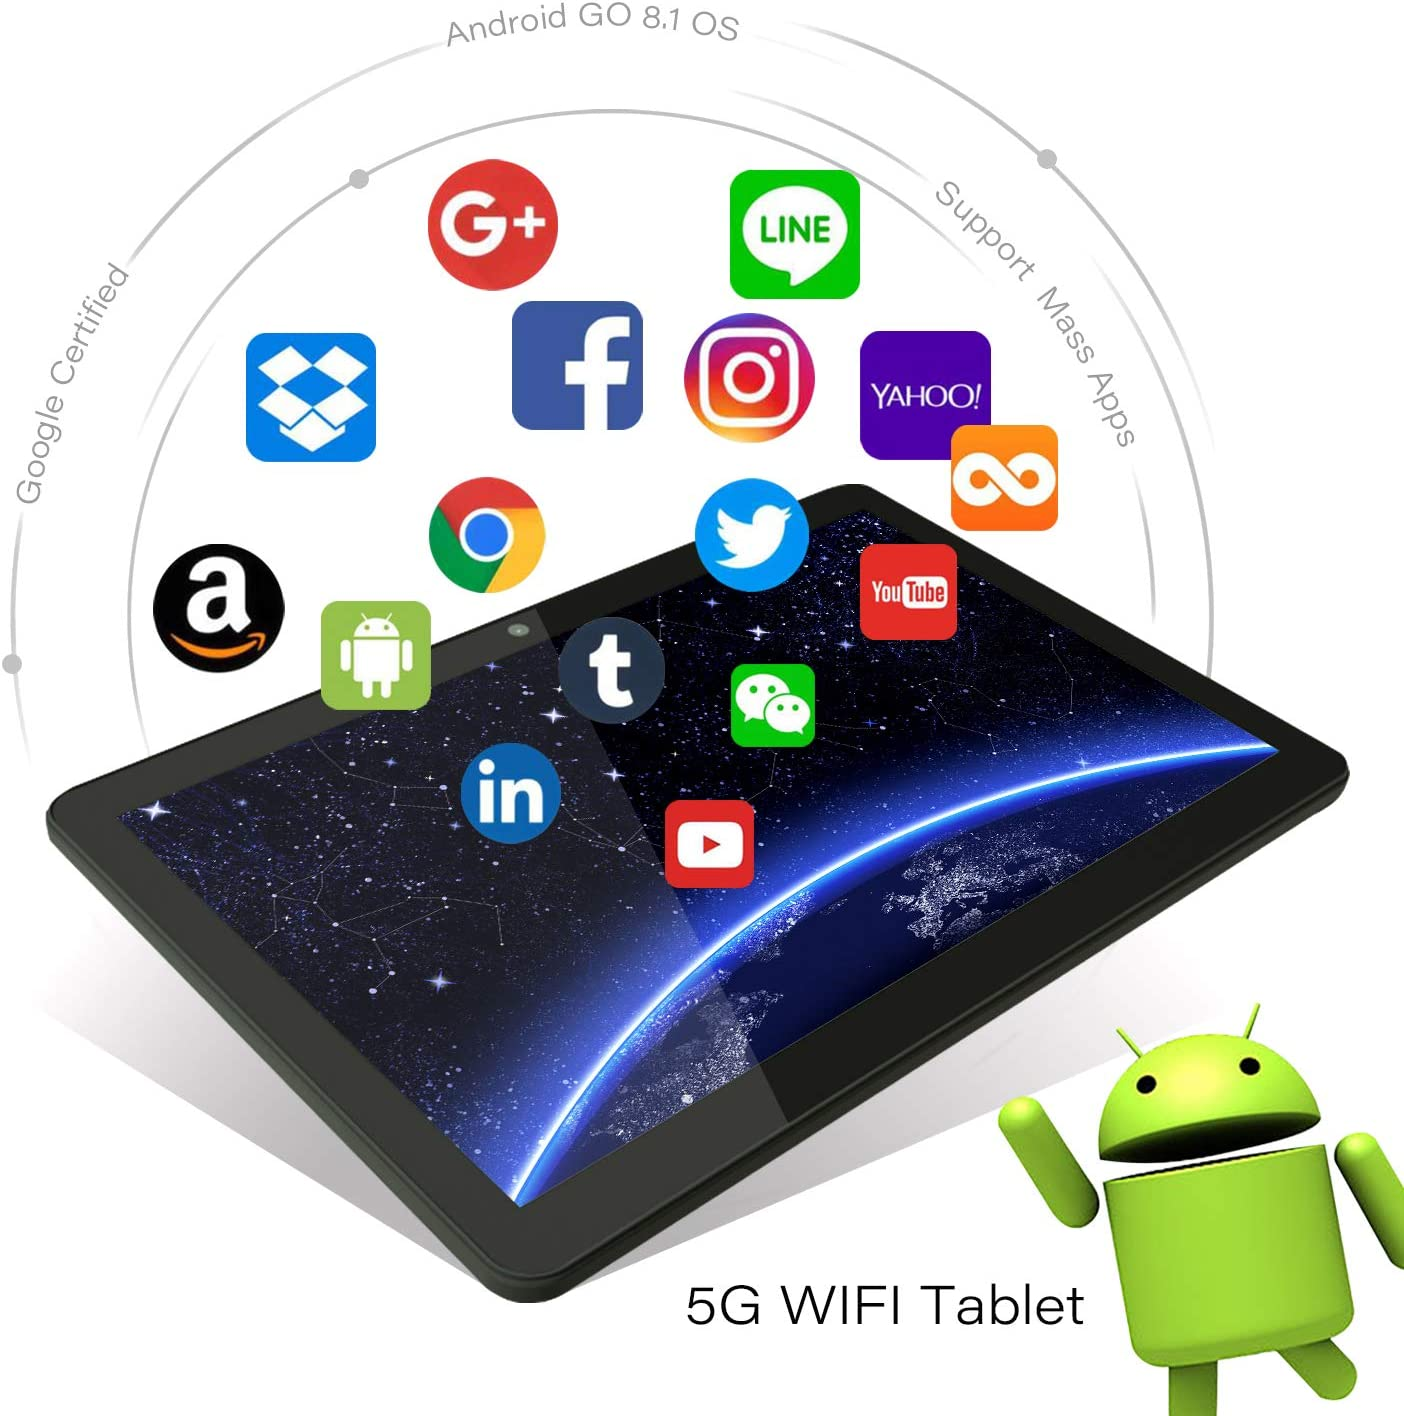 Android Tablet 10 Inch, 5G WiFi Tablet with Dual Camera, 16GB Storage, Android 8.1 Tablets PC, Quad-Core Processor, Google Certified, 1280×800 IPS HD Display, Bluetooth, GPS, FM – Black 71R4JDq0IhL